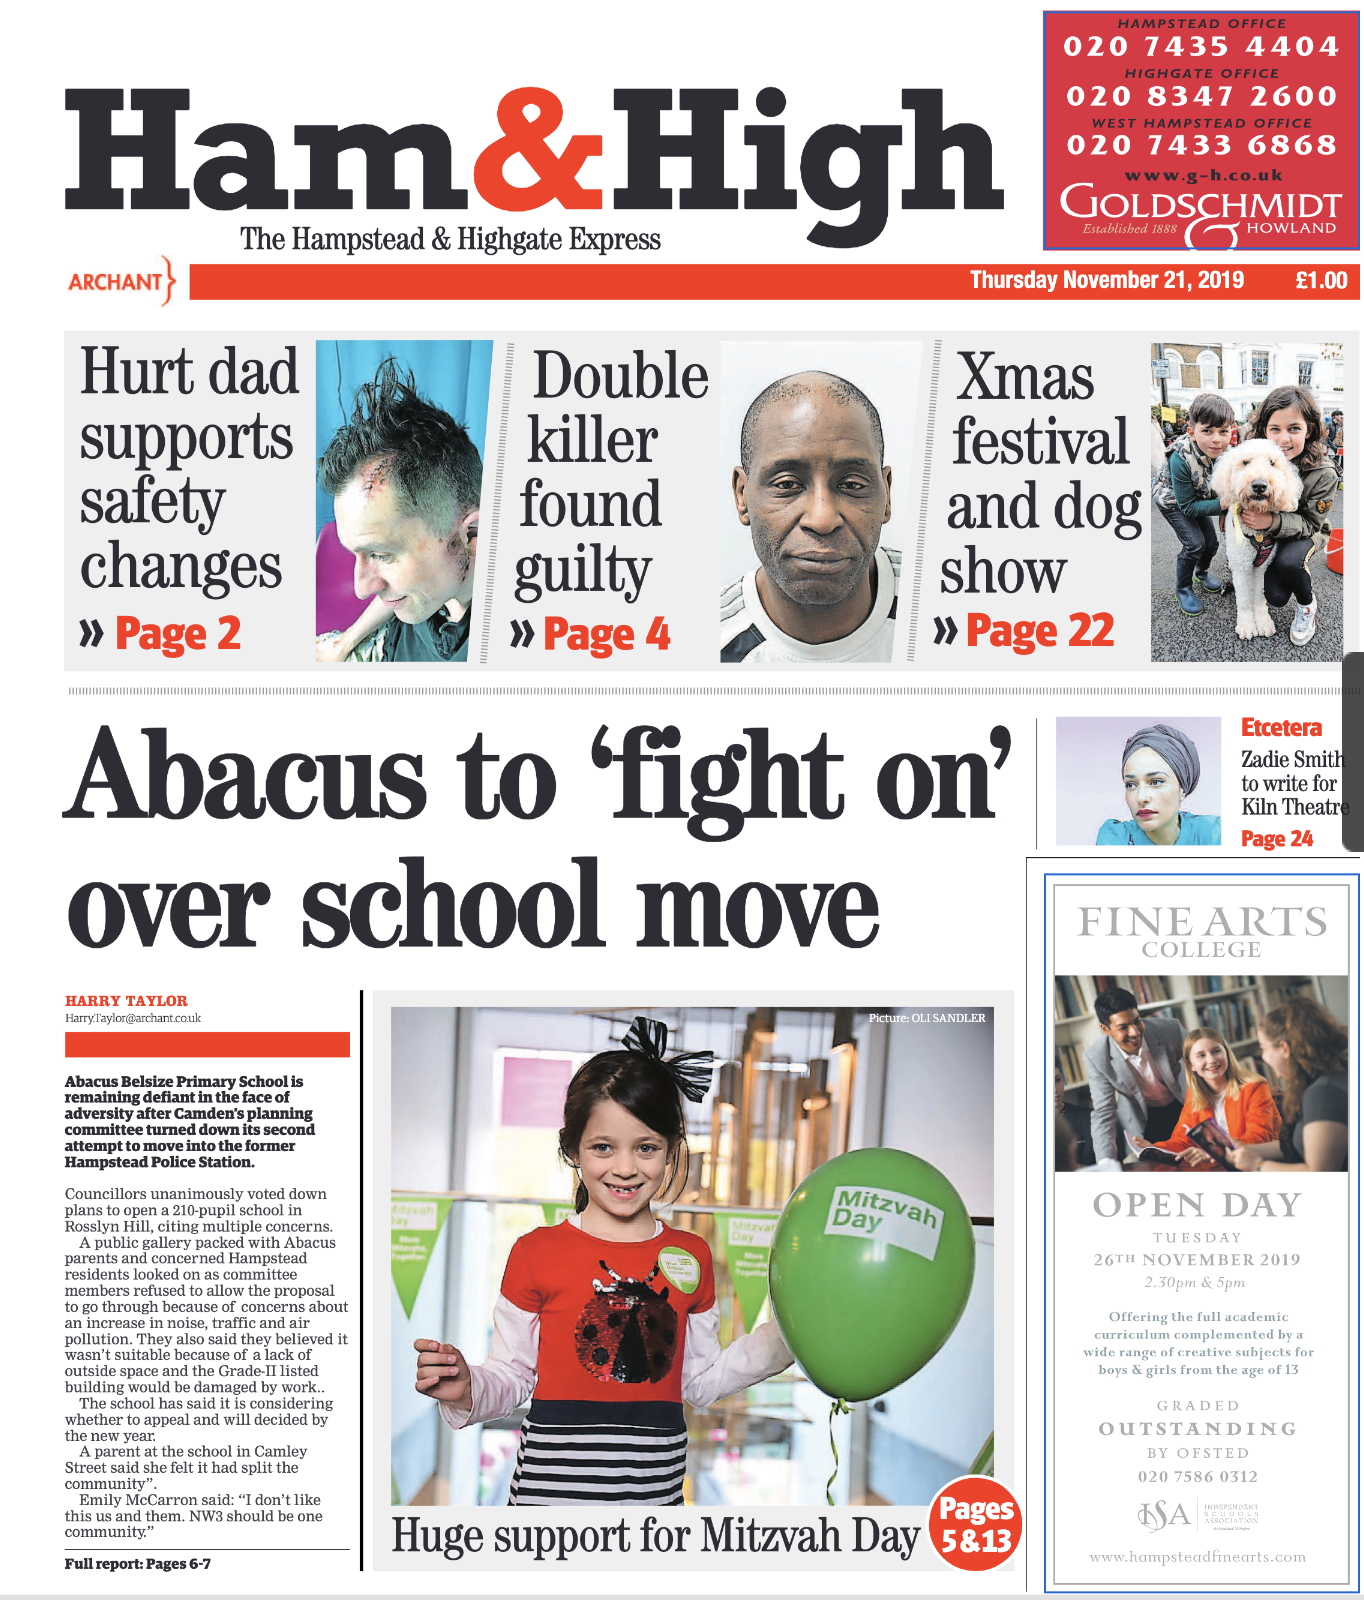 Front page of the Ham & High